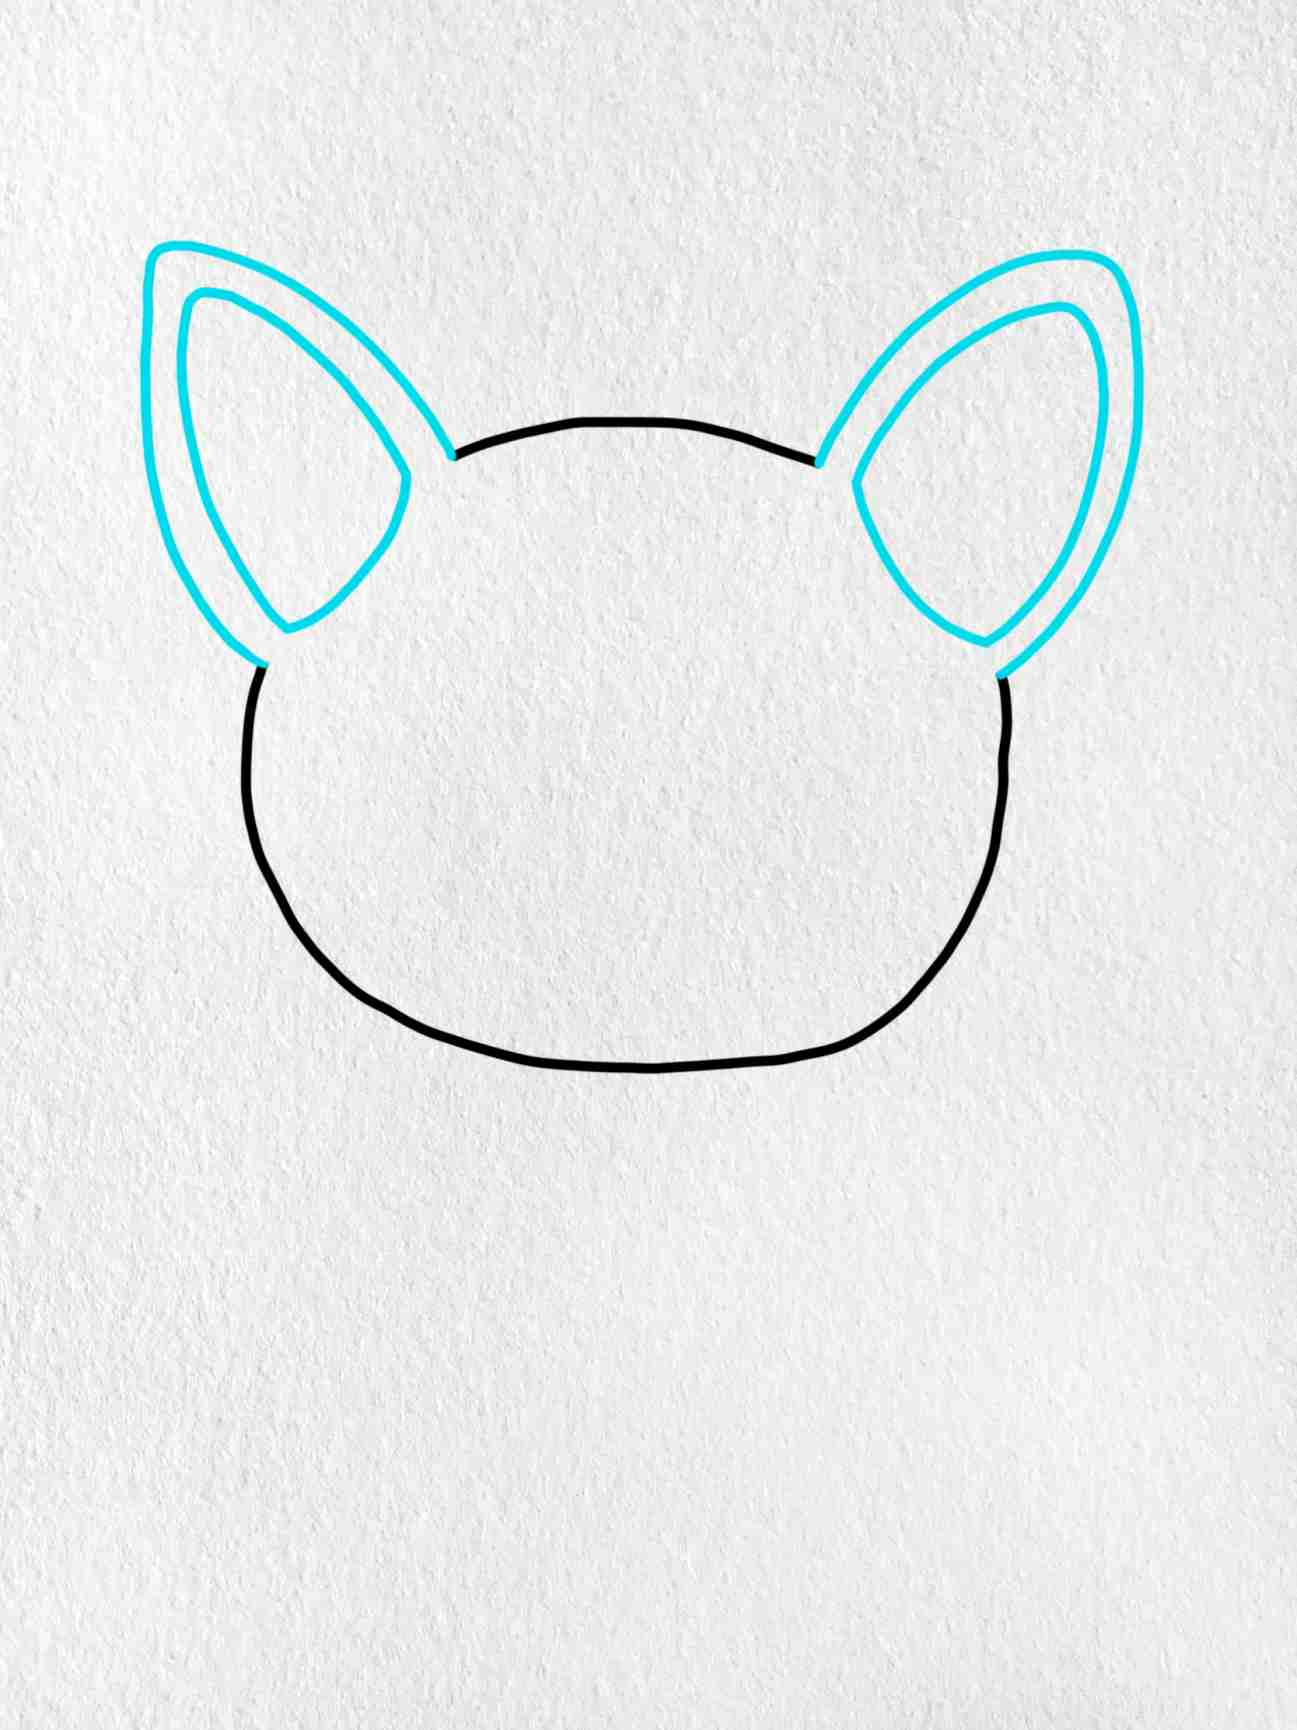 How To Draw A French Bulldog: Step 2